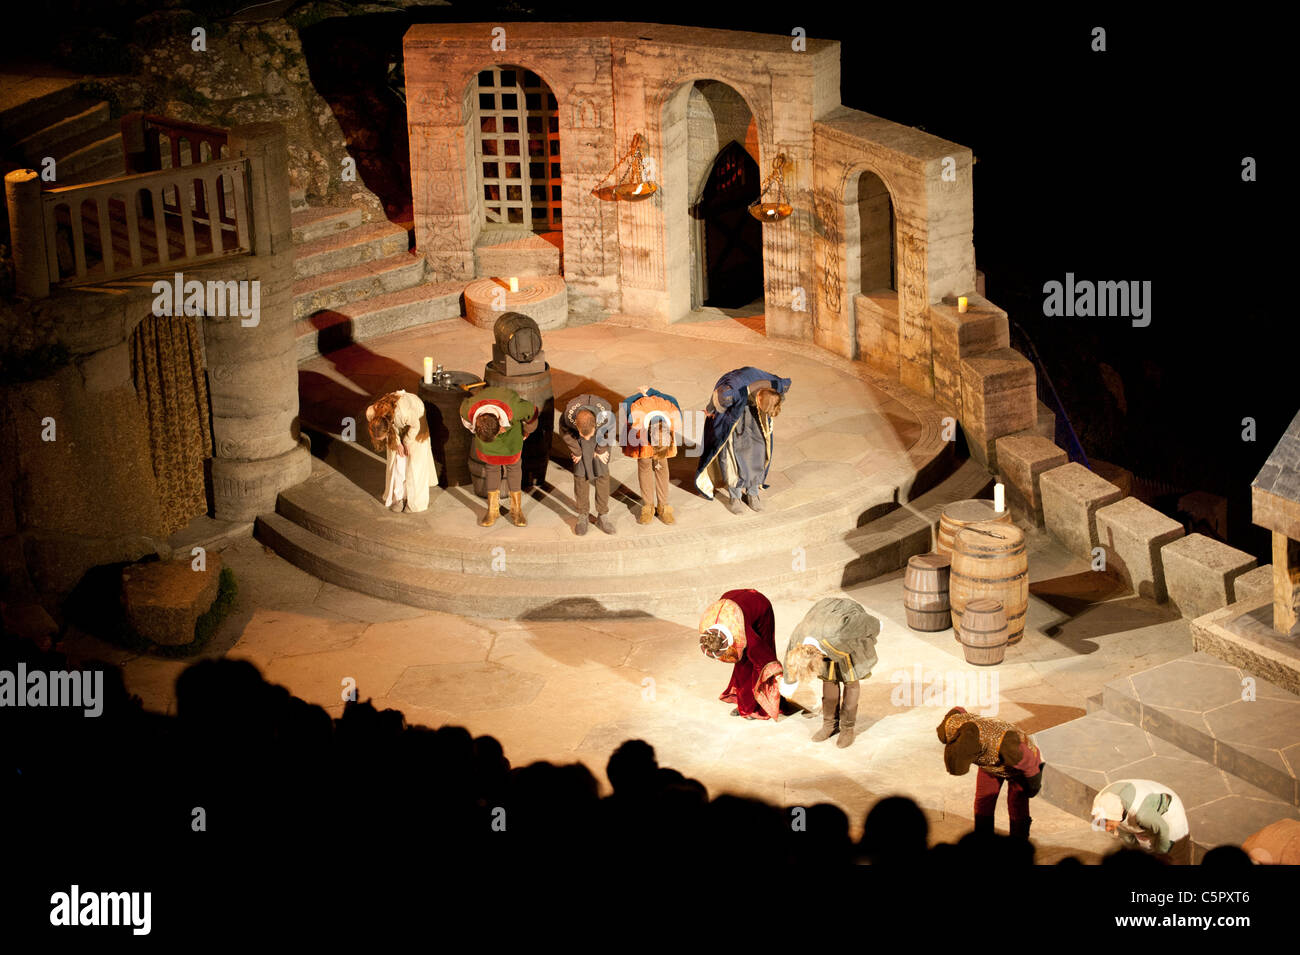 Performers bow before their audience at the end of theatrical performance at the Minack Theatre, Cornwall. - Stock Image